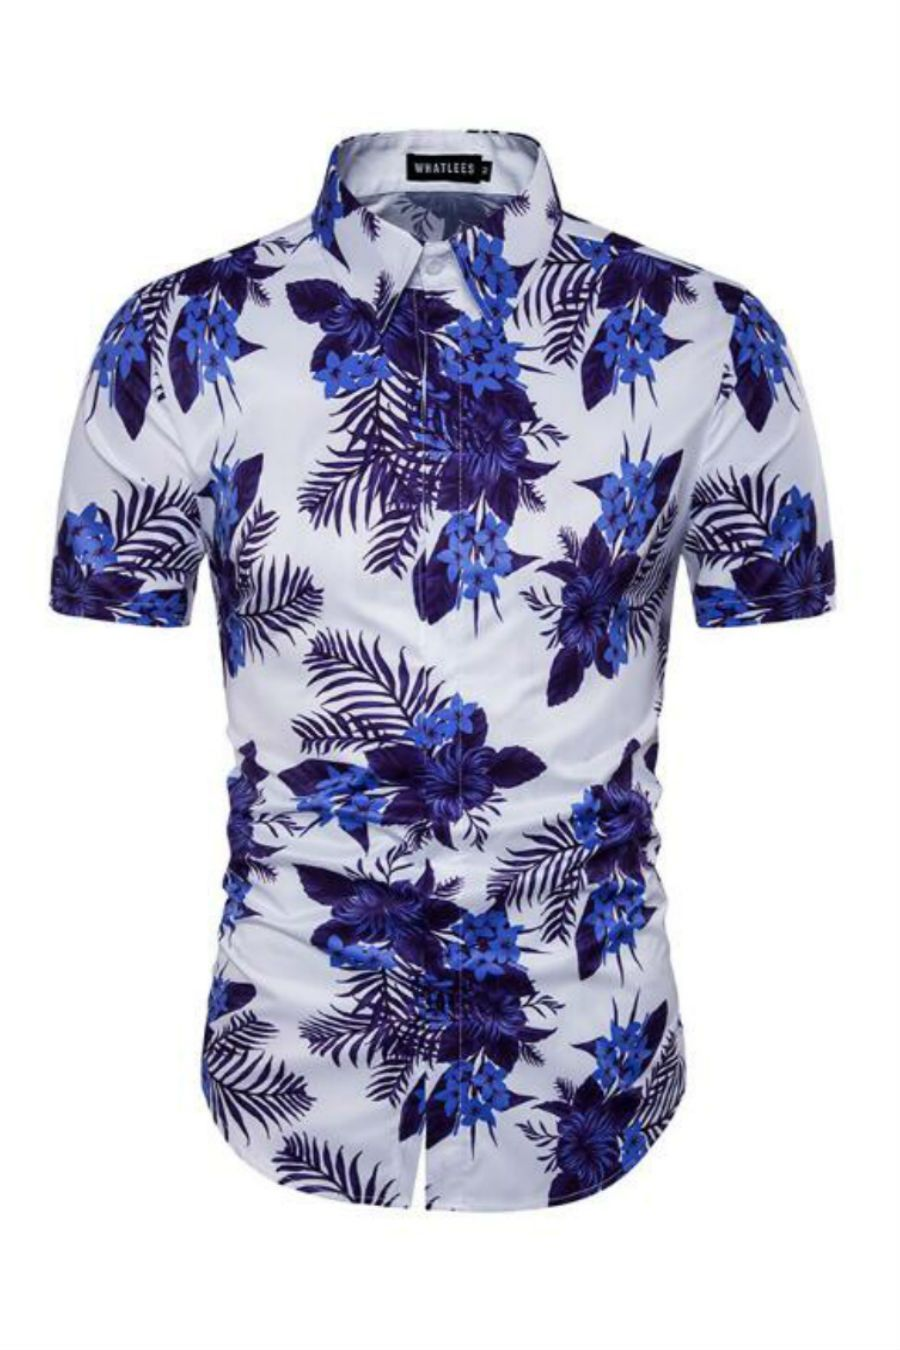 475a989dd8bd Mens Fashion Summer – The World of Mens Fashion. Blue Floral Prints Short-Sleeved  Shirt In White